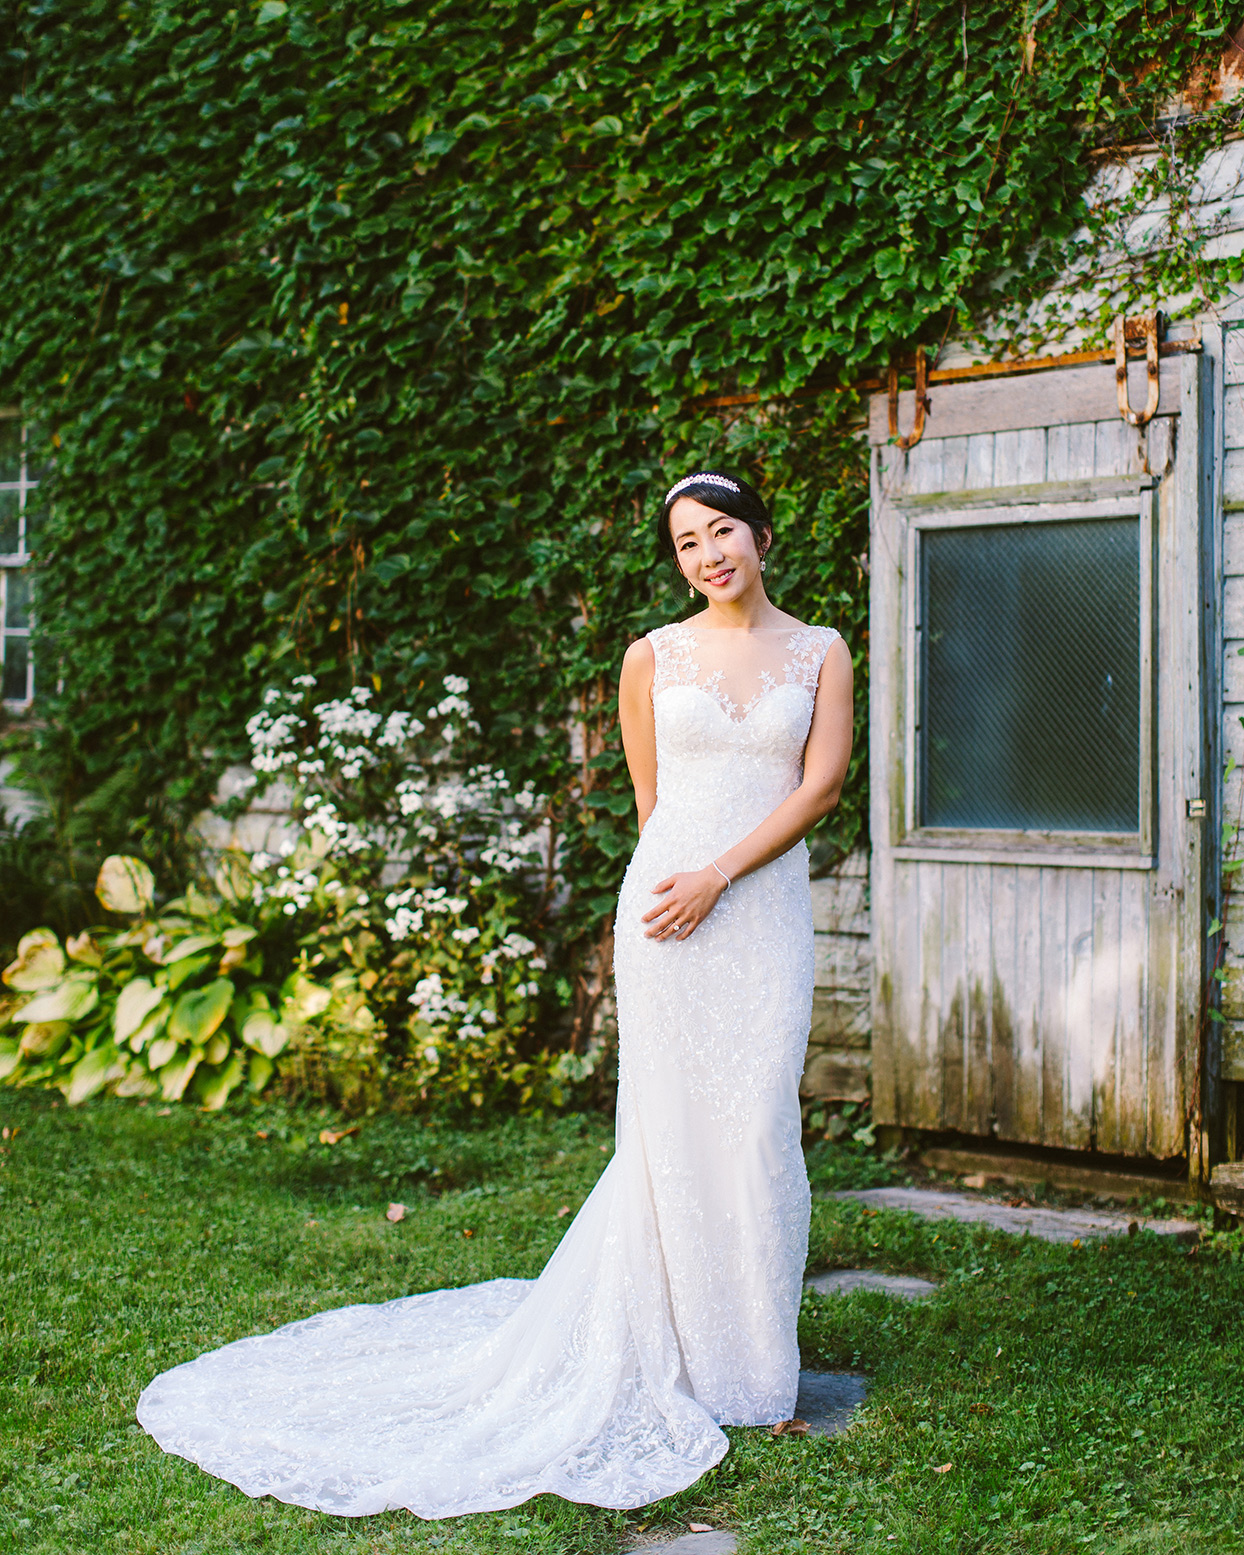 bride in white dress standing on stone path in the grass